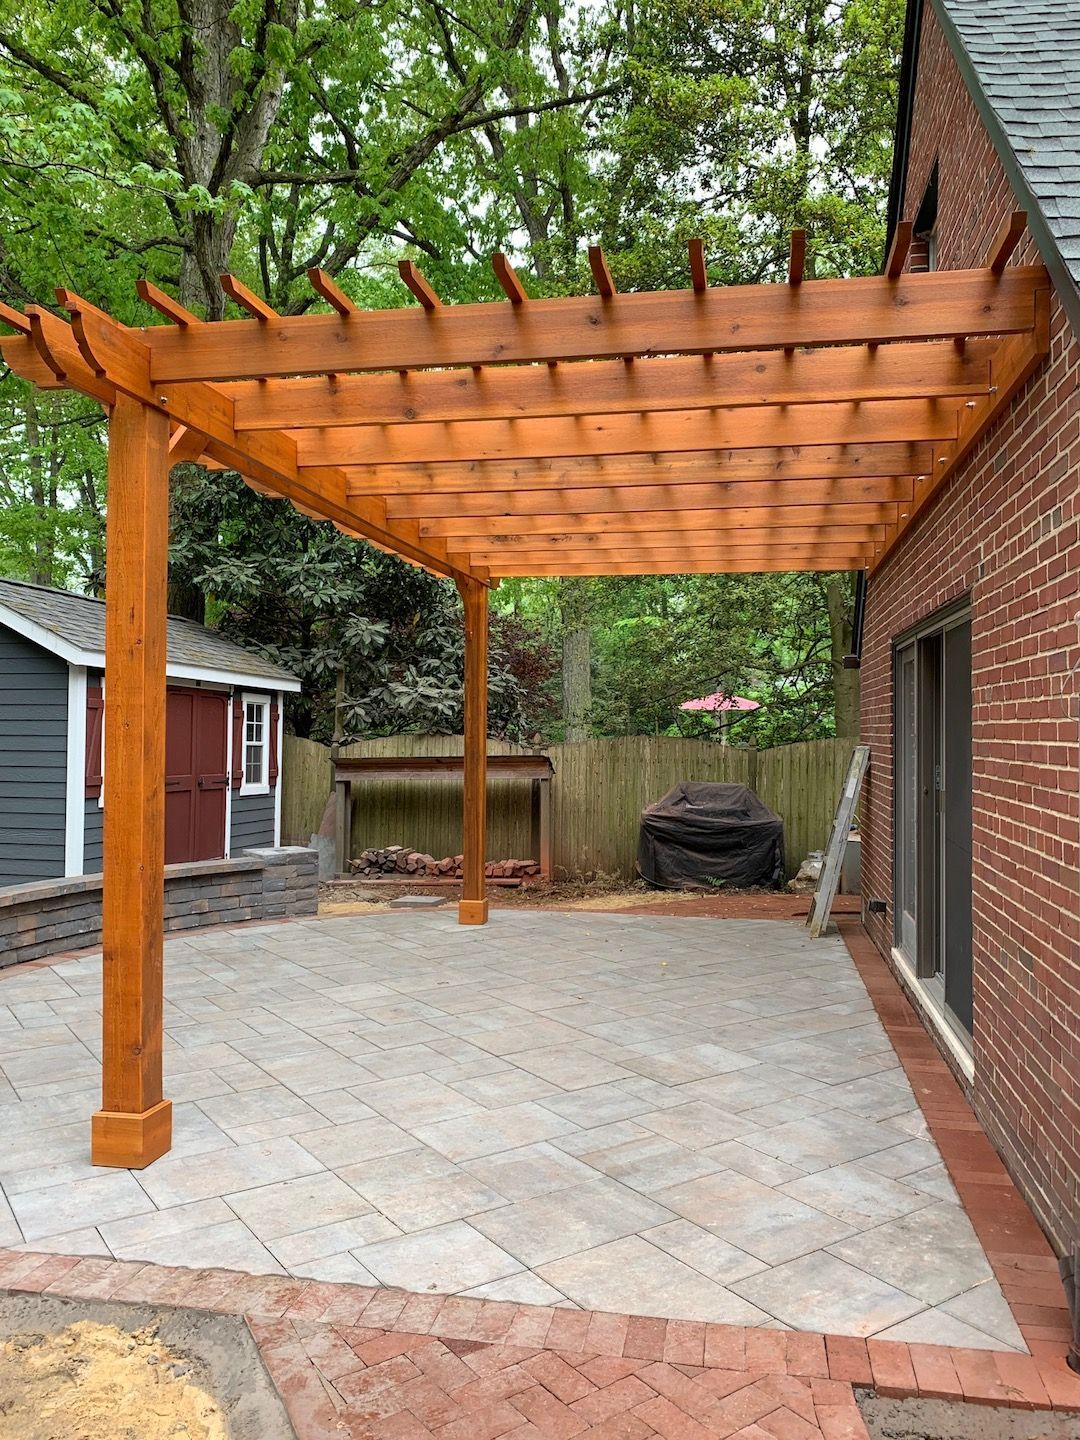 Attached Pergola Ideas is part of Outdoor pergola, Backyard patio, Pergola, Backyard, Pergola designs, Backyard spaces - Looking for a stylish way to frame in your backyard retreat  Want moreshade on your outdoor patio  Attached pergola kits make an easy addition to your patio thatextend your livable space  Bring the indoors out and attach a pergola to your deck or patio!